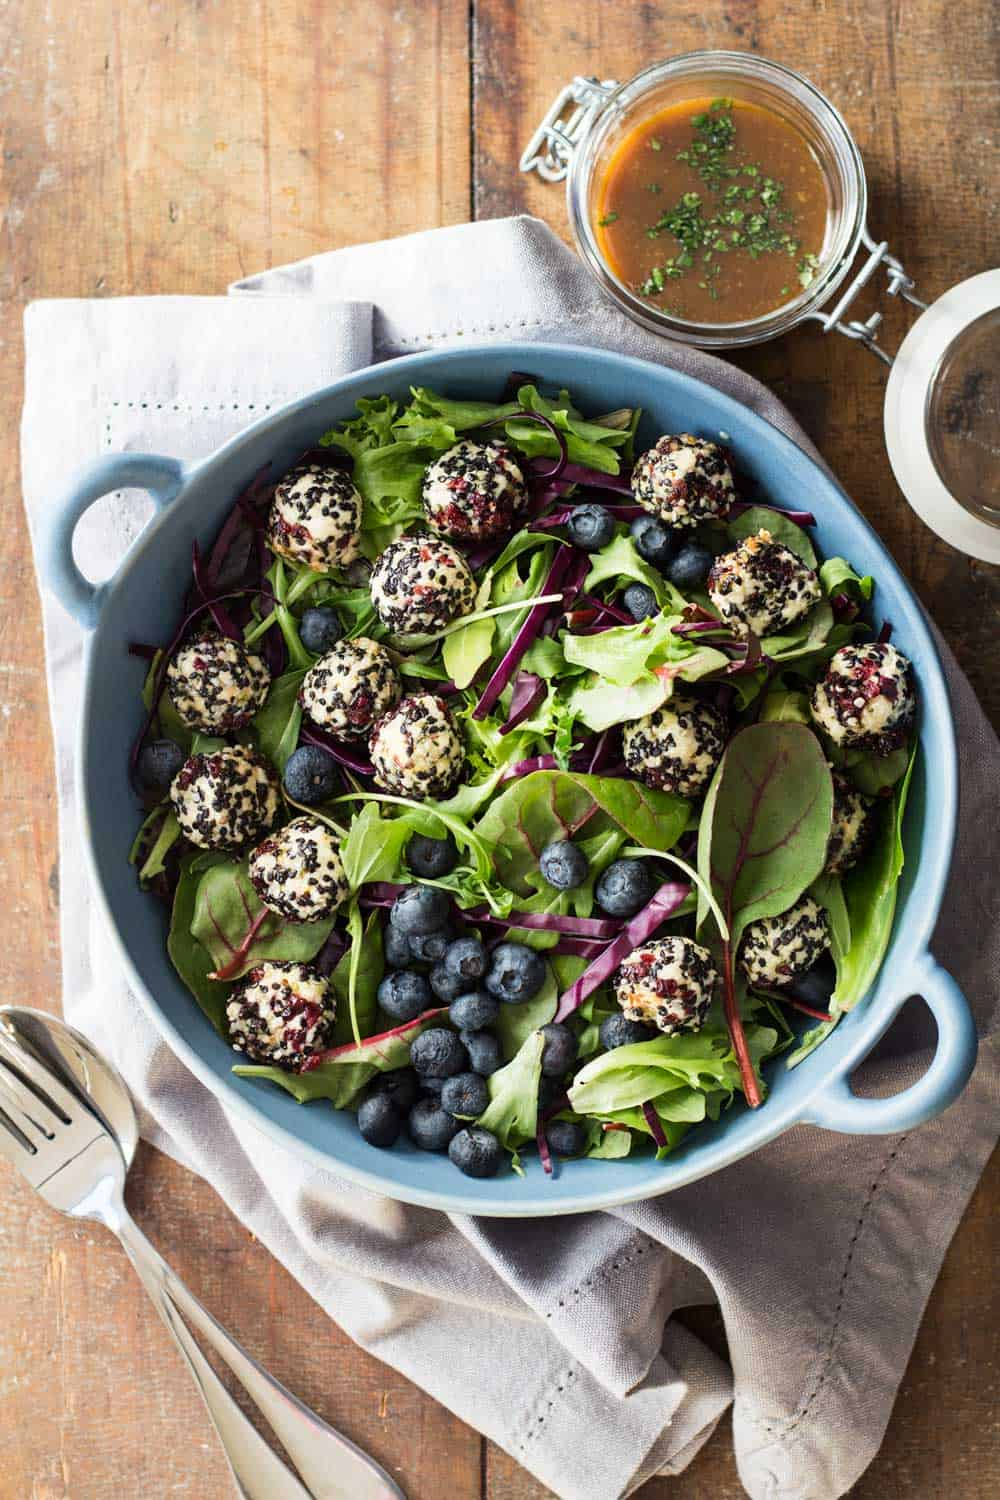 Warm Goat Cheese Salad in blue salad bowl on wooden table